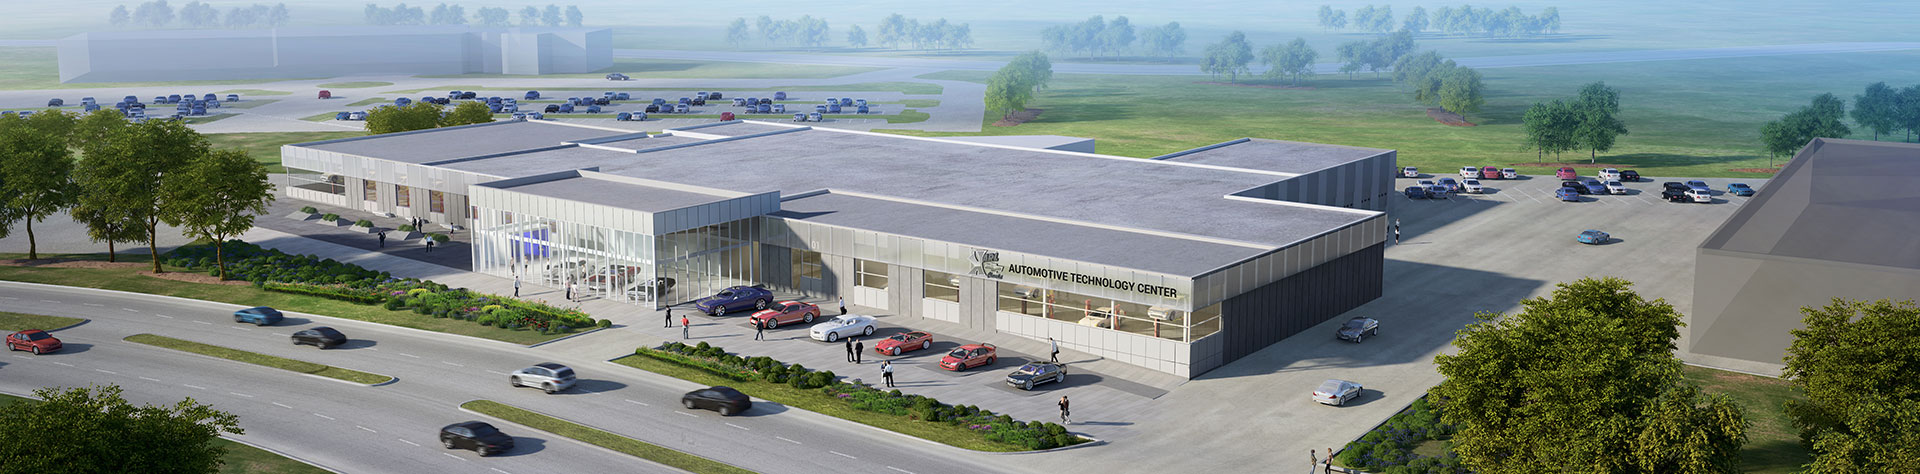 Renderings of the New Automotive Technology Center